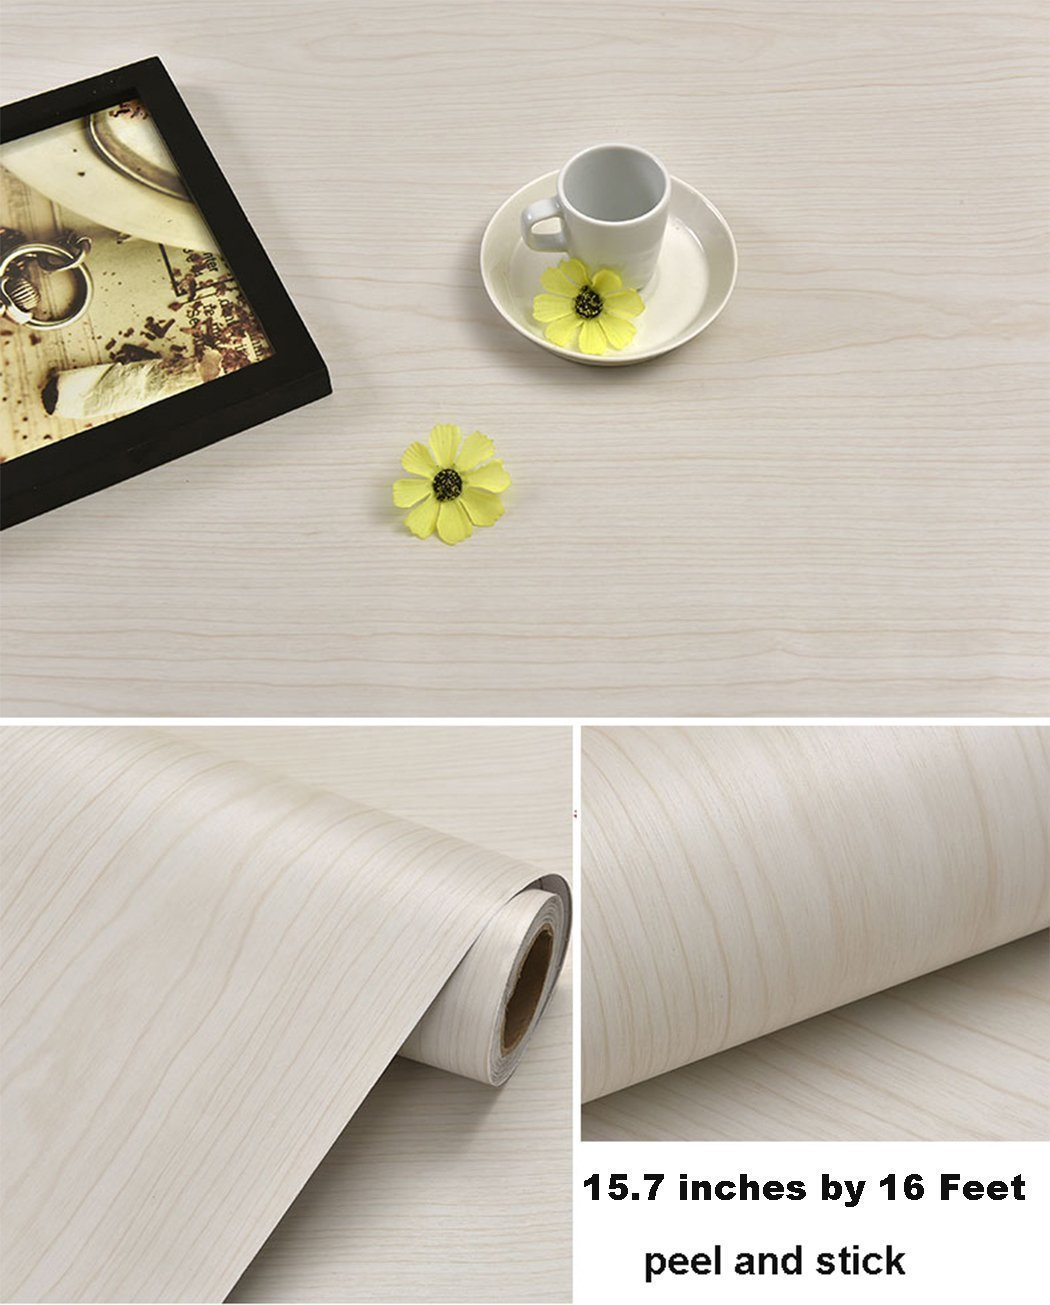 Glow4u Self Adhesive Light Oak Wood Grain Contact Paper Shelf Drawer Liner for Kitchen Cabinets Shelves Drawer Cupboards Table Arts and Crafts Decal 15.7x197 Inches